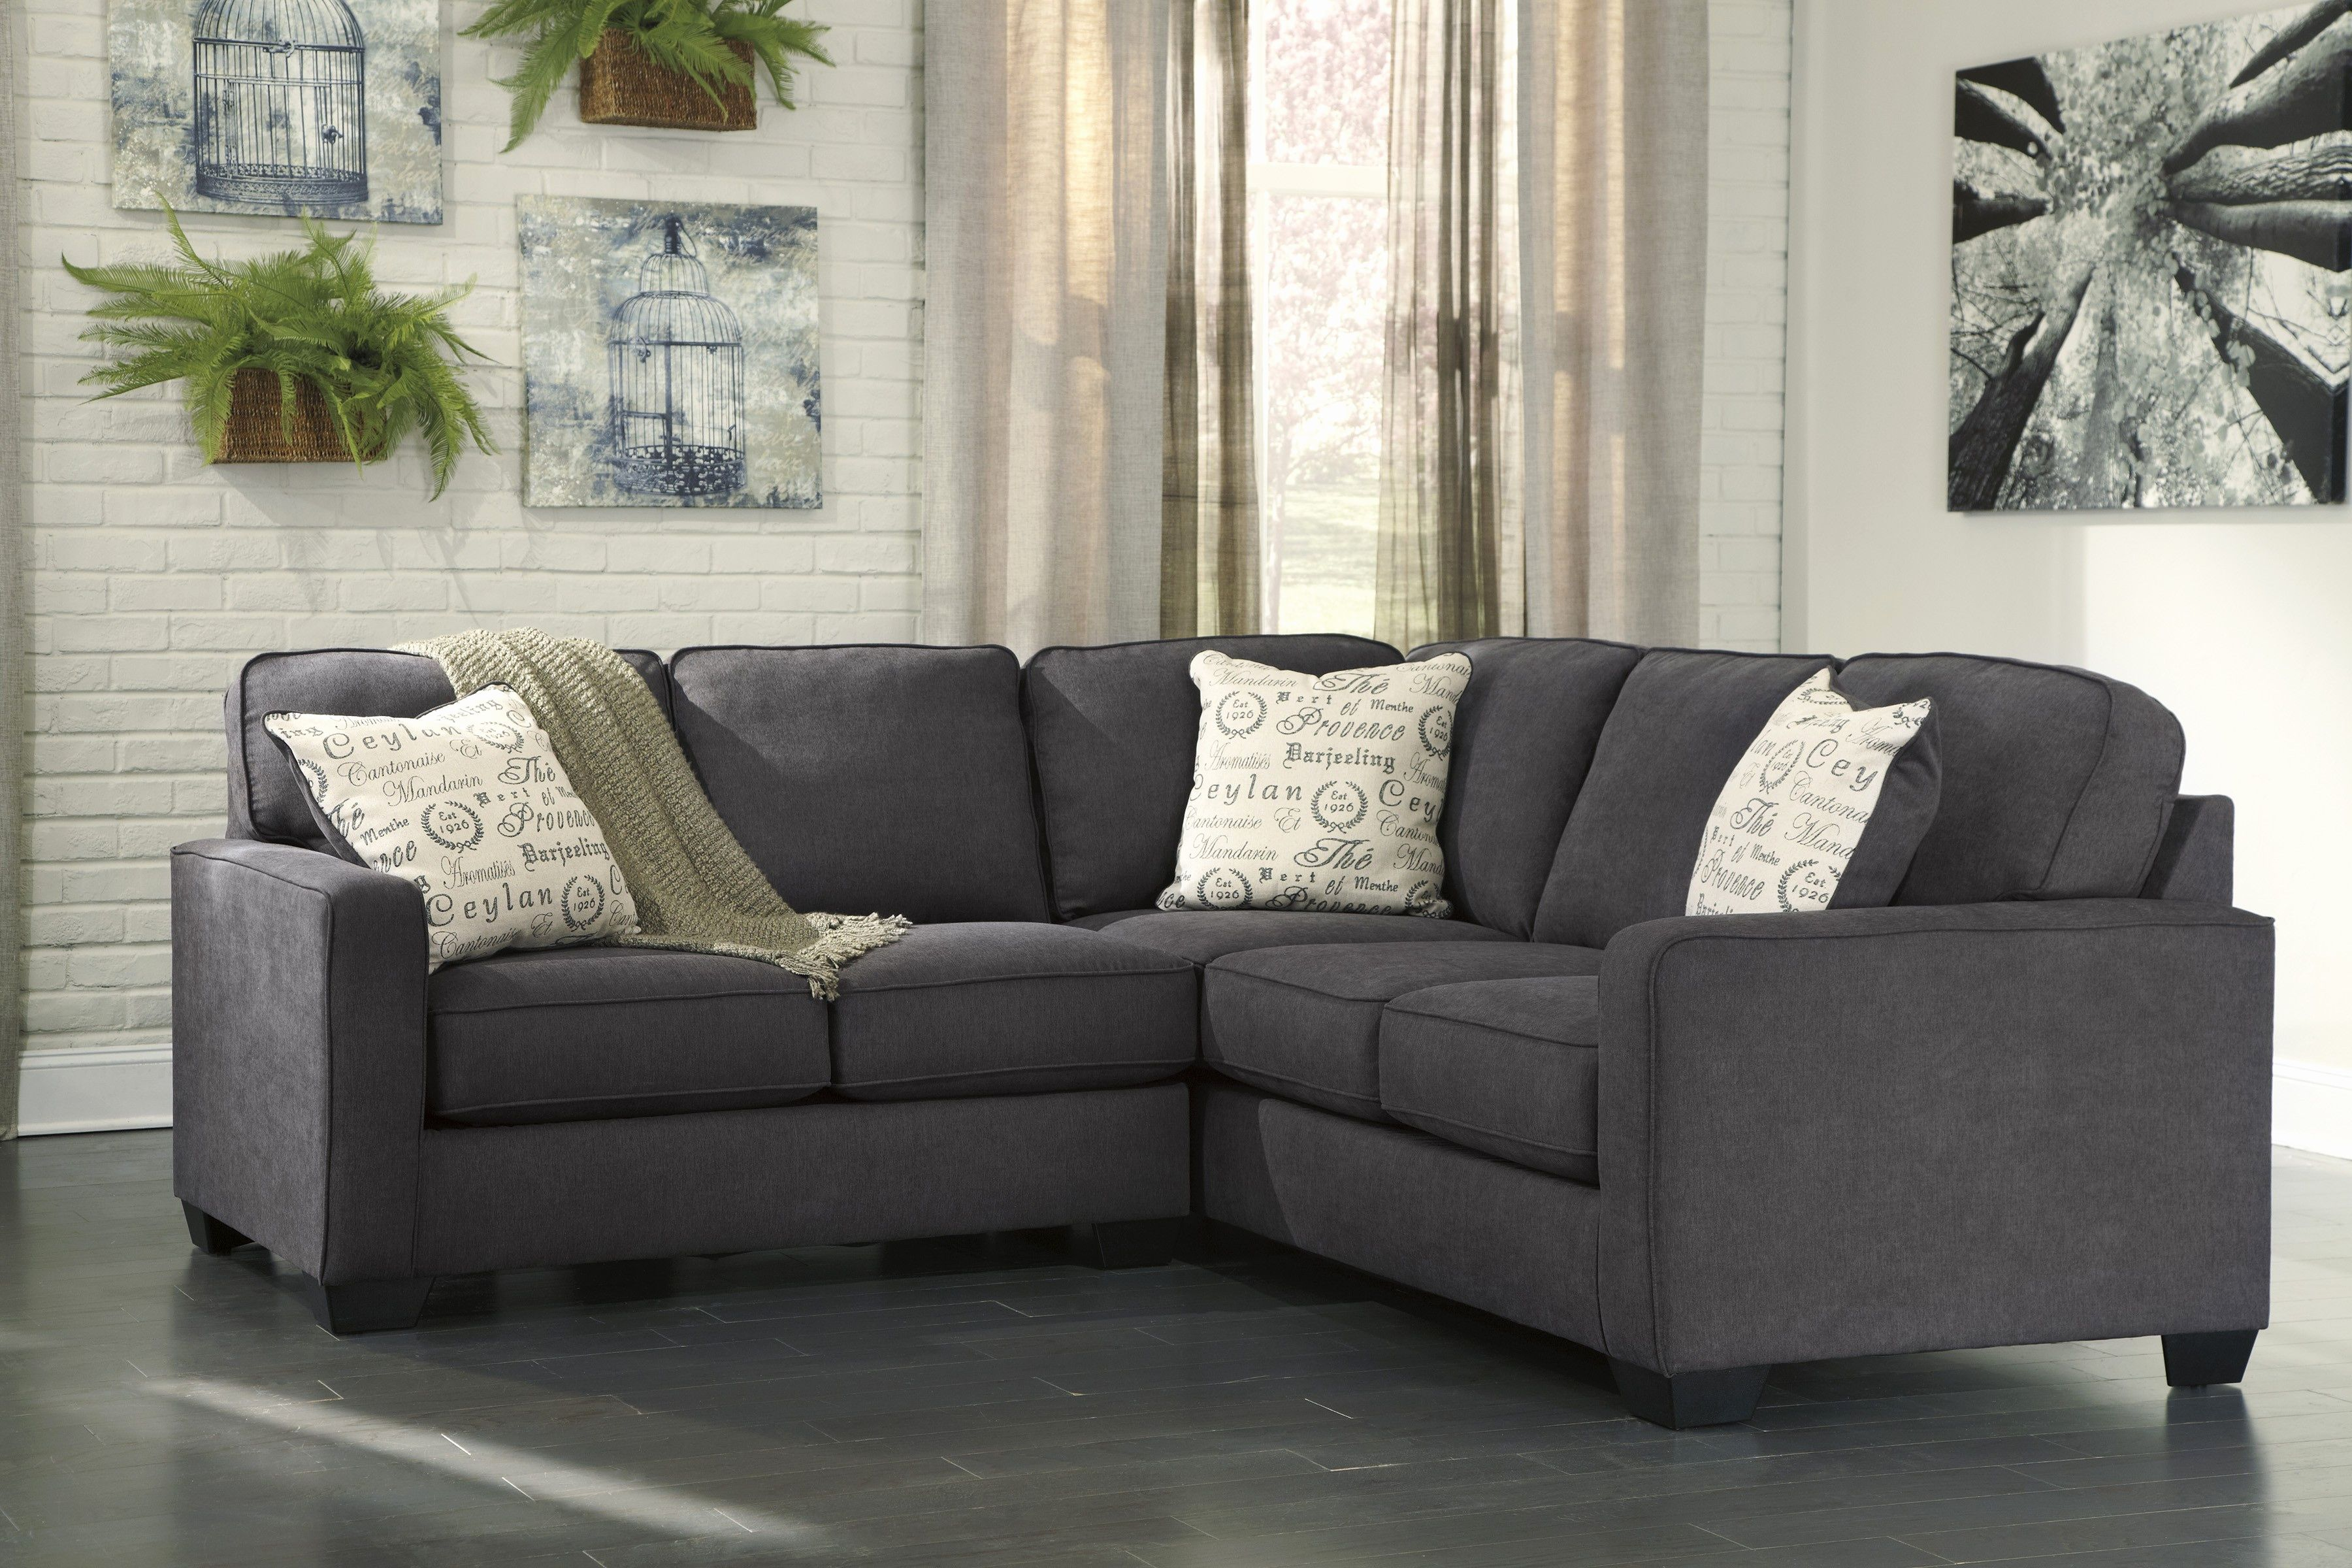 Best Lovely 2 Piece Sectional Sofa Pics Alenya Charcoal 2 Piece 640 x 480